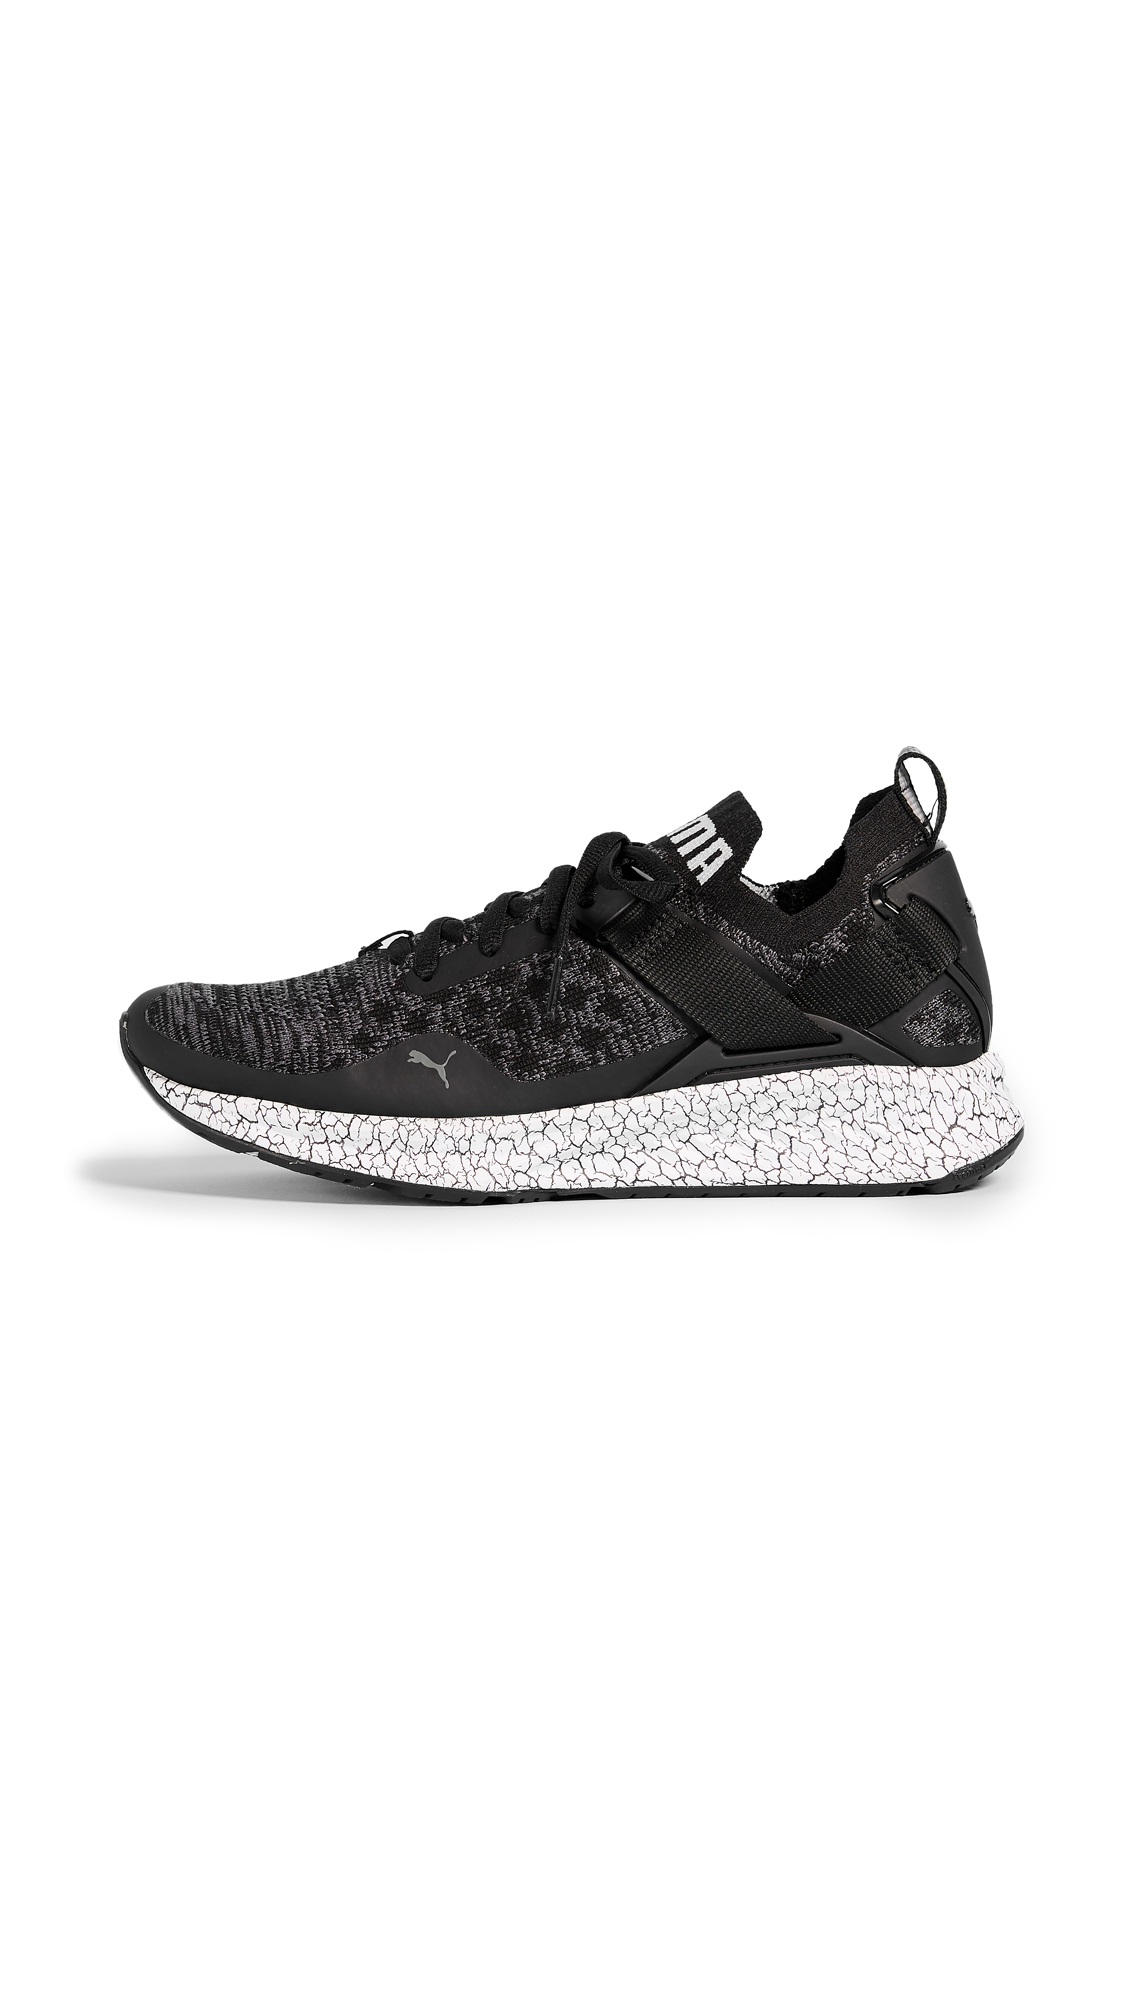 PUMA Ignite evoKNIT Lo Hypernature Sneakers - Black/Marble